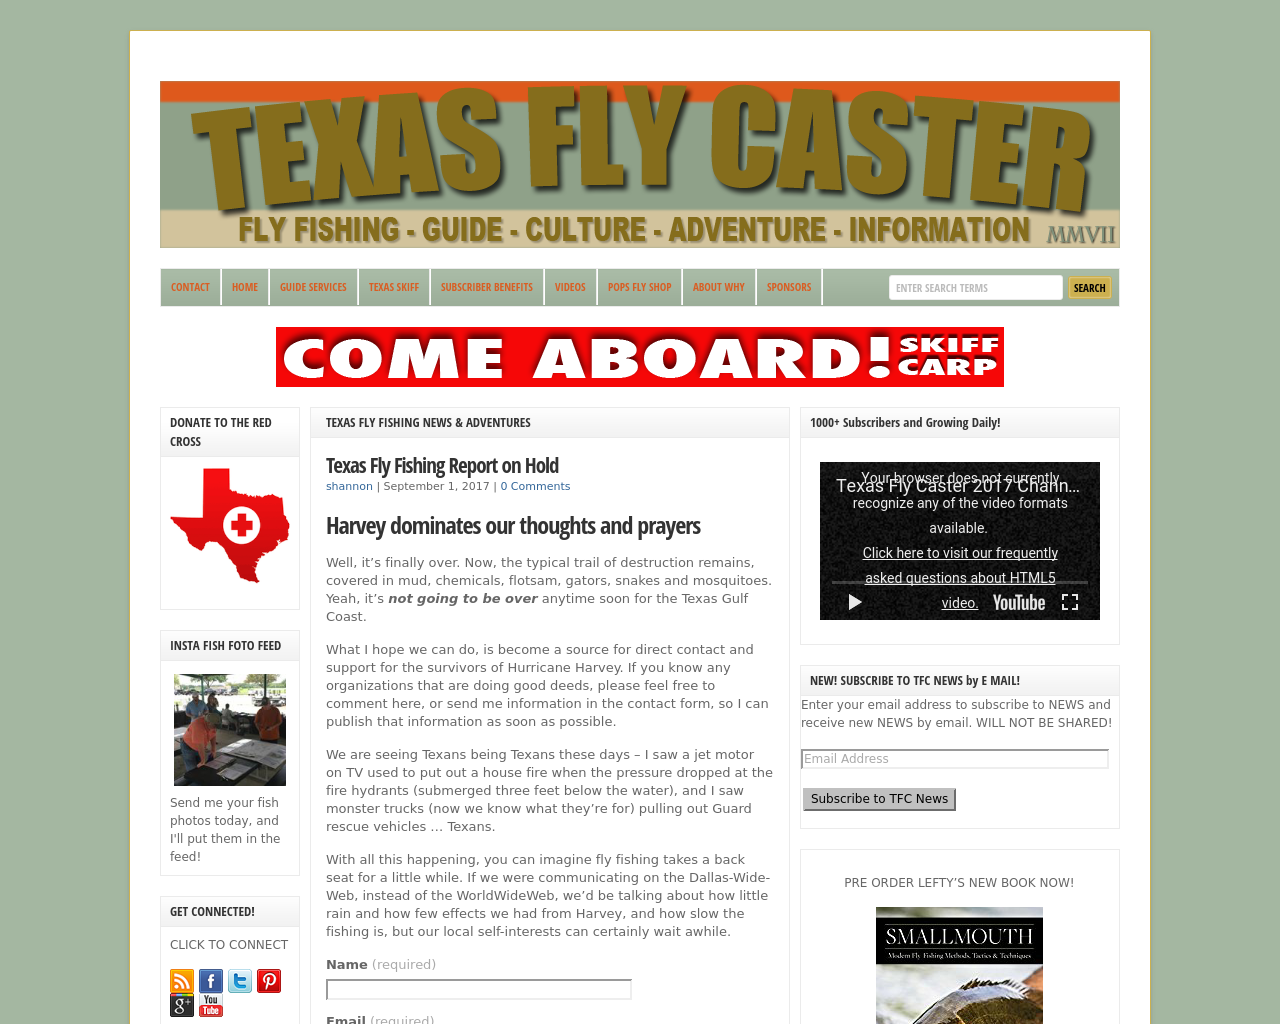 Texas-Fly-Caster-Advertising-Reviews-Pricing